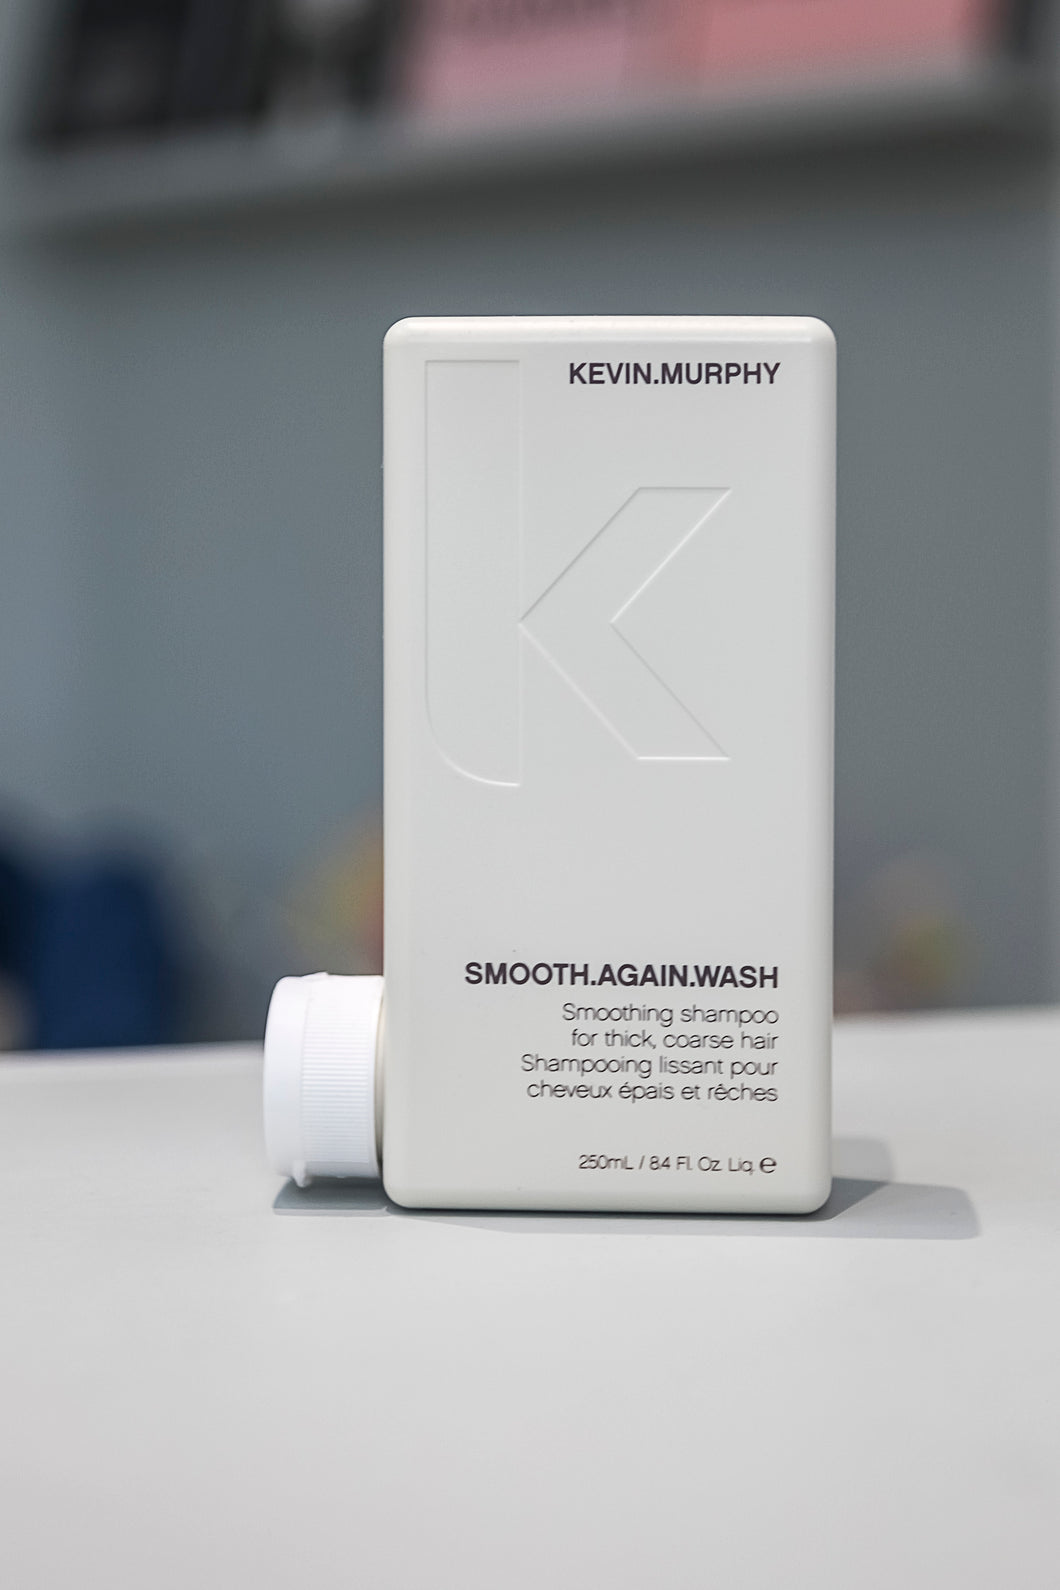 KEVIN MURPHY SMOOTH.AGAIN.WASH (250ML)